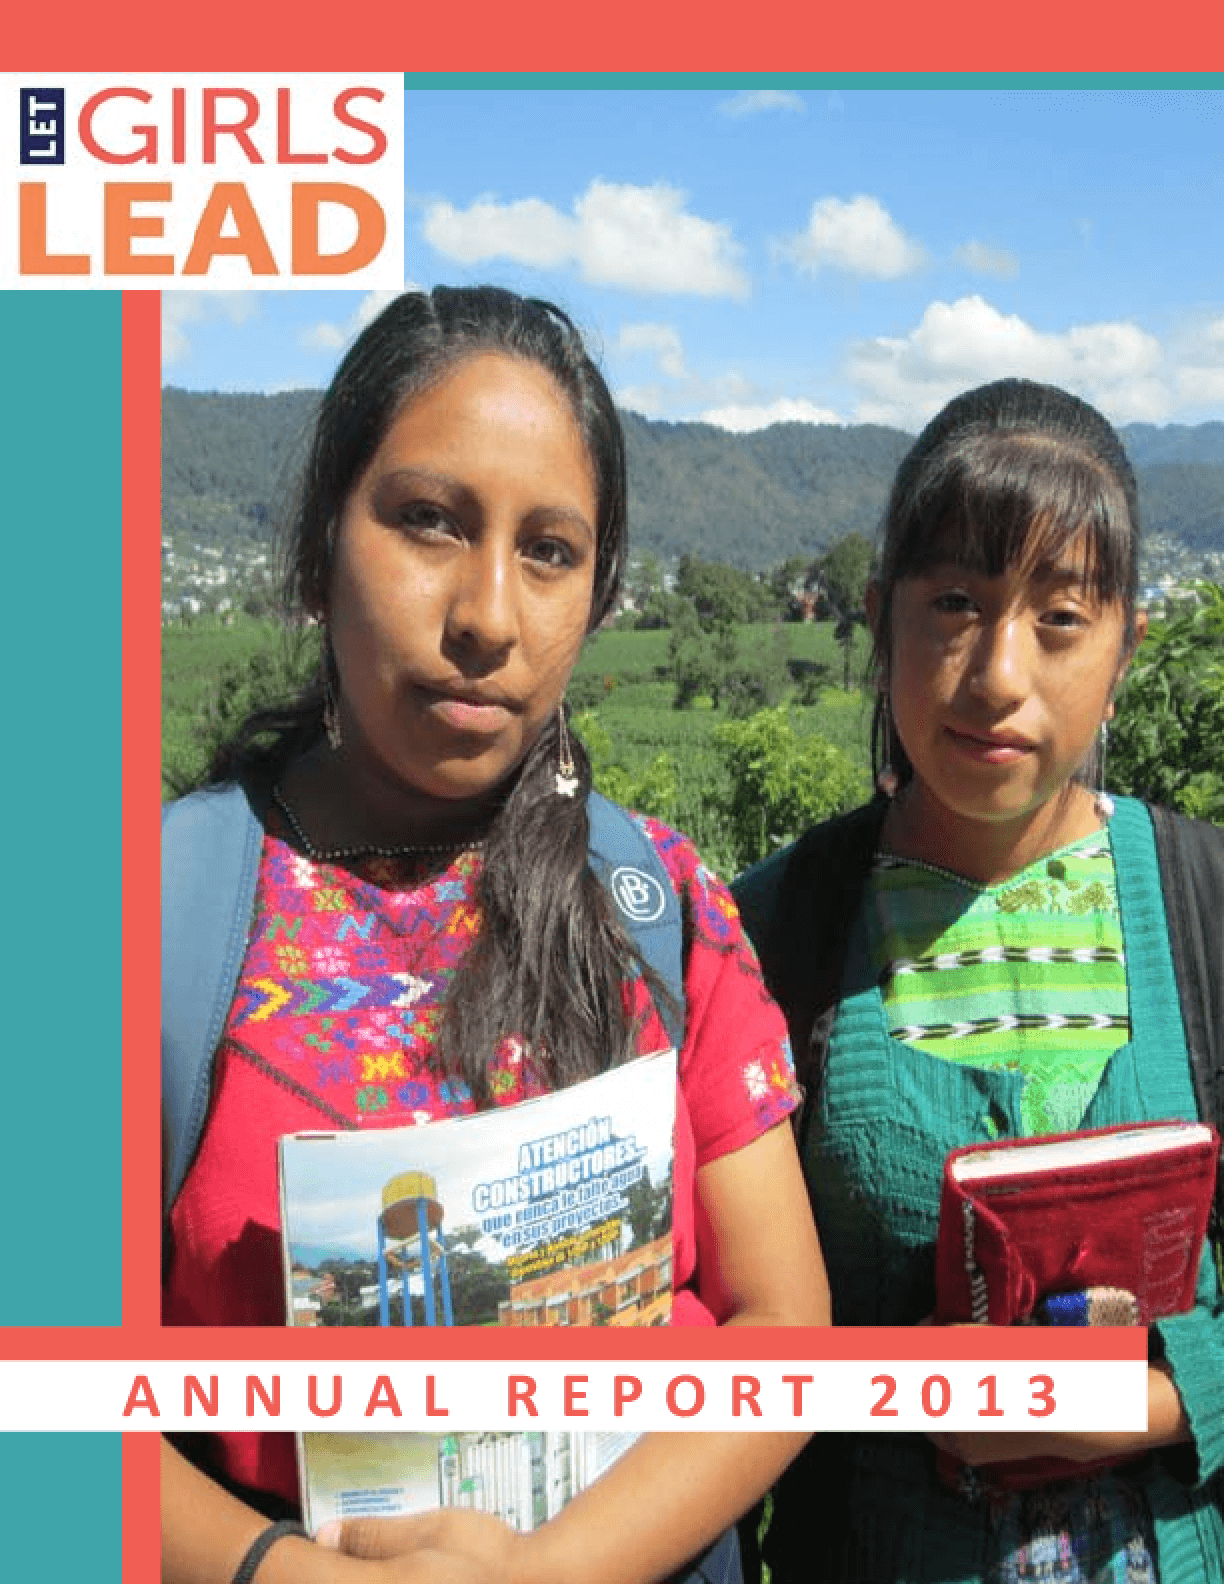 Let Girls Lead, Annual Report 2013